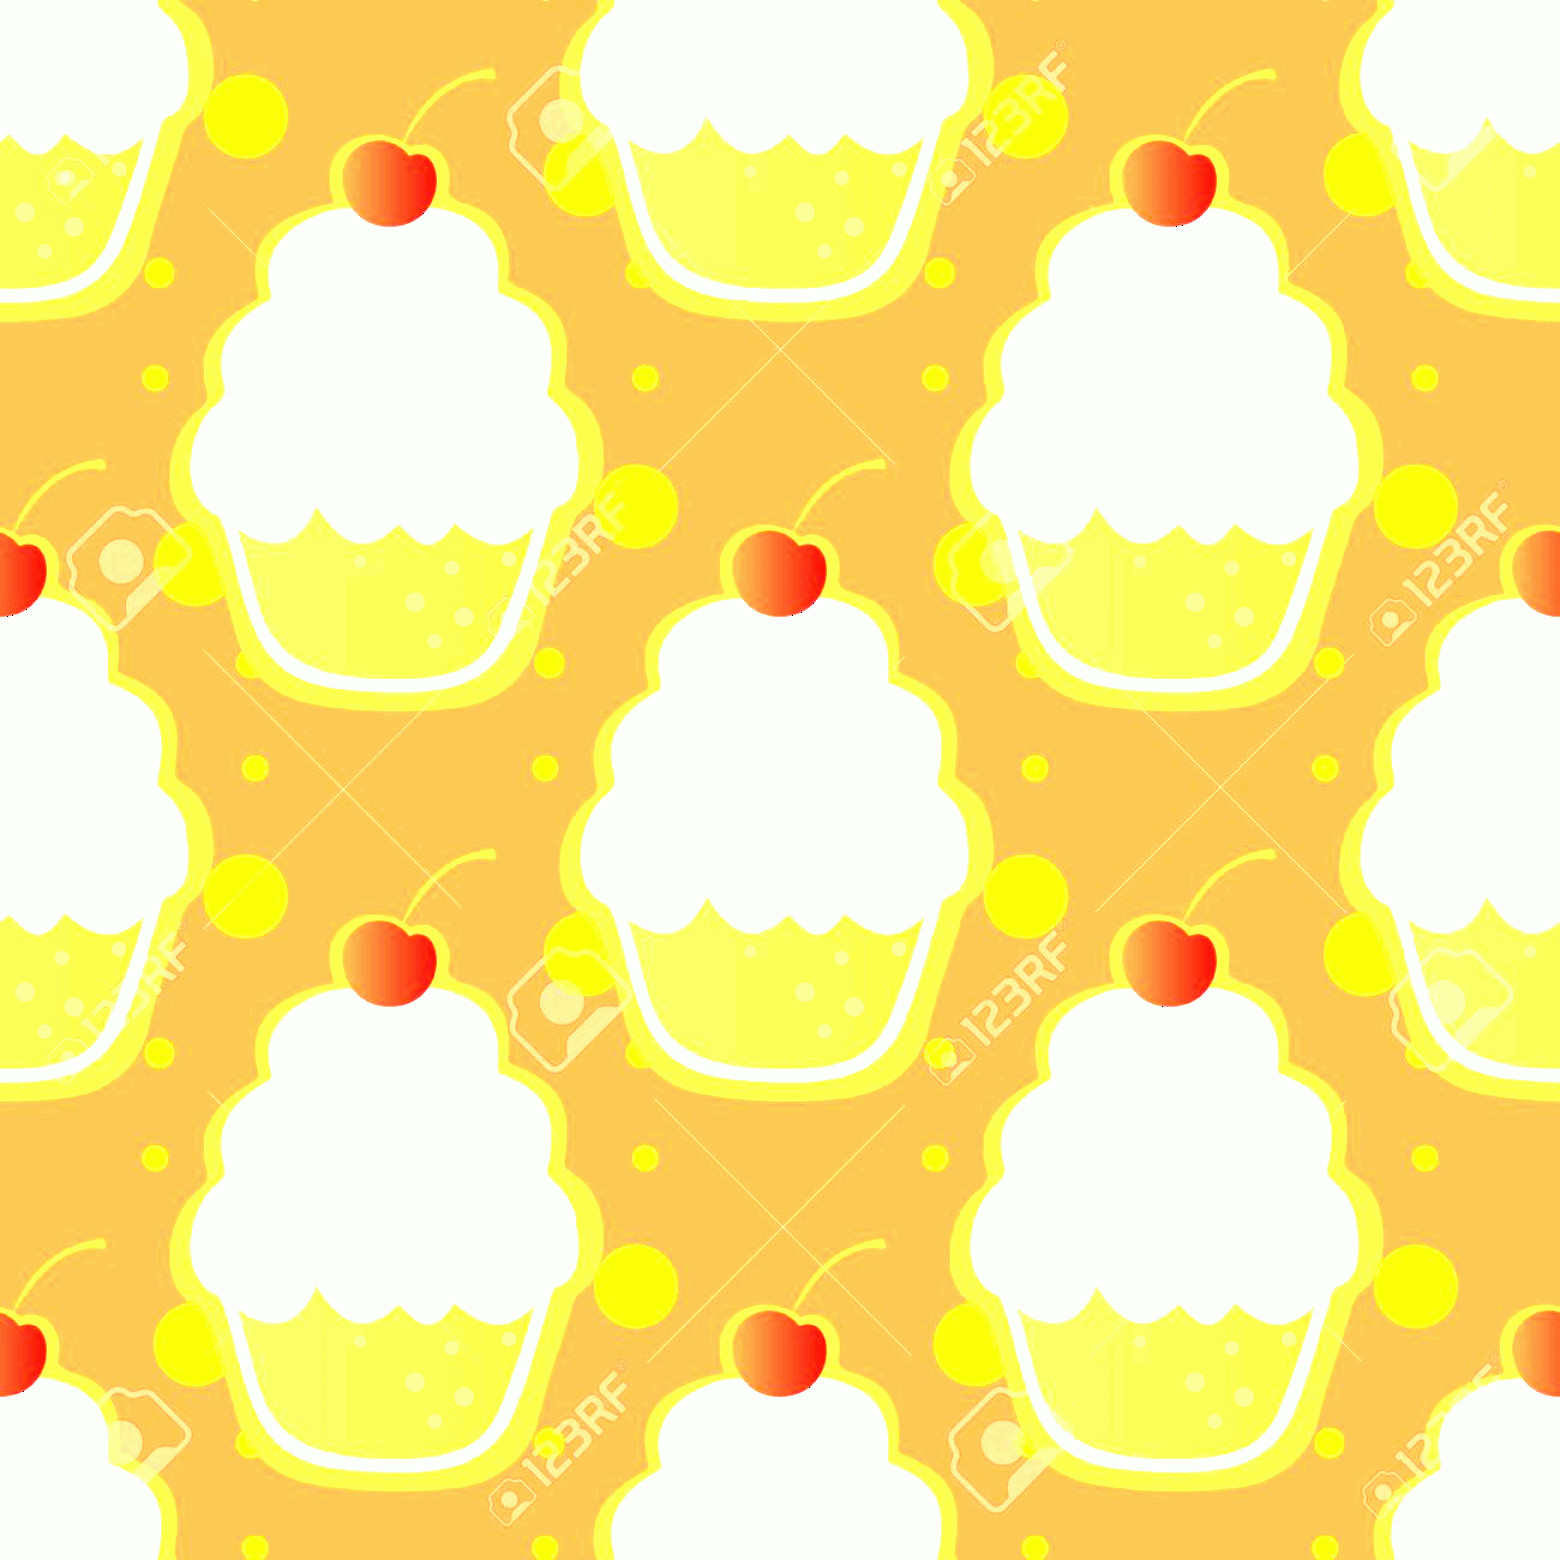 Vector Abstract Art Cake: Photostock Vector Abstract Stylized Cup Cakes On An Orange Background Seamless Pattern